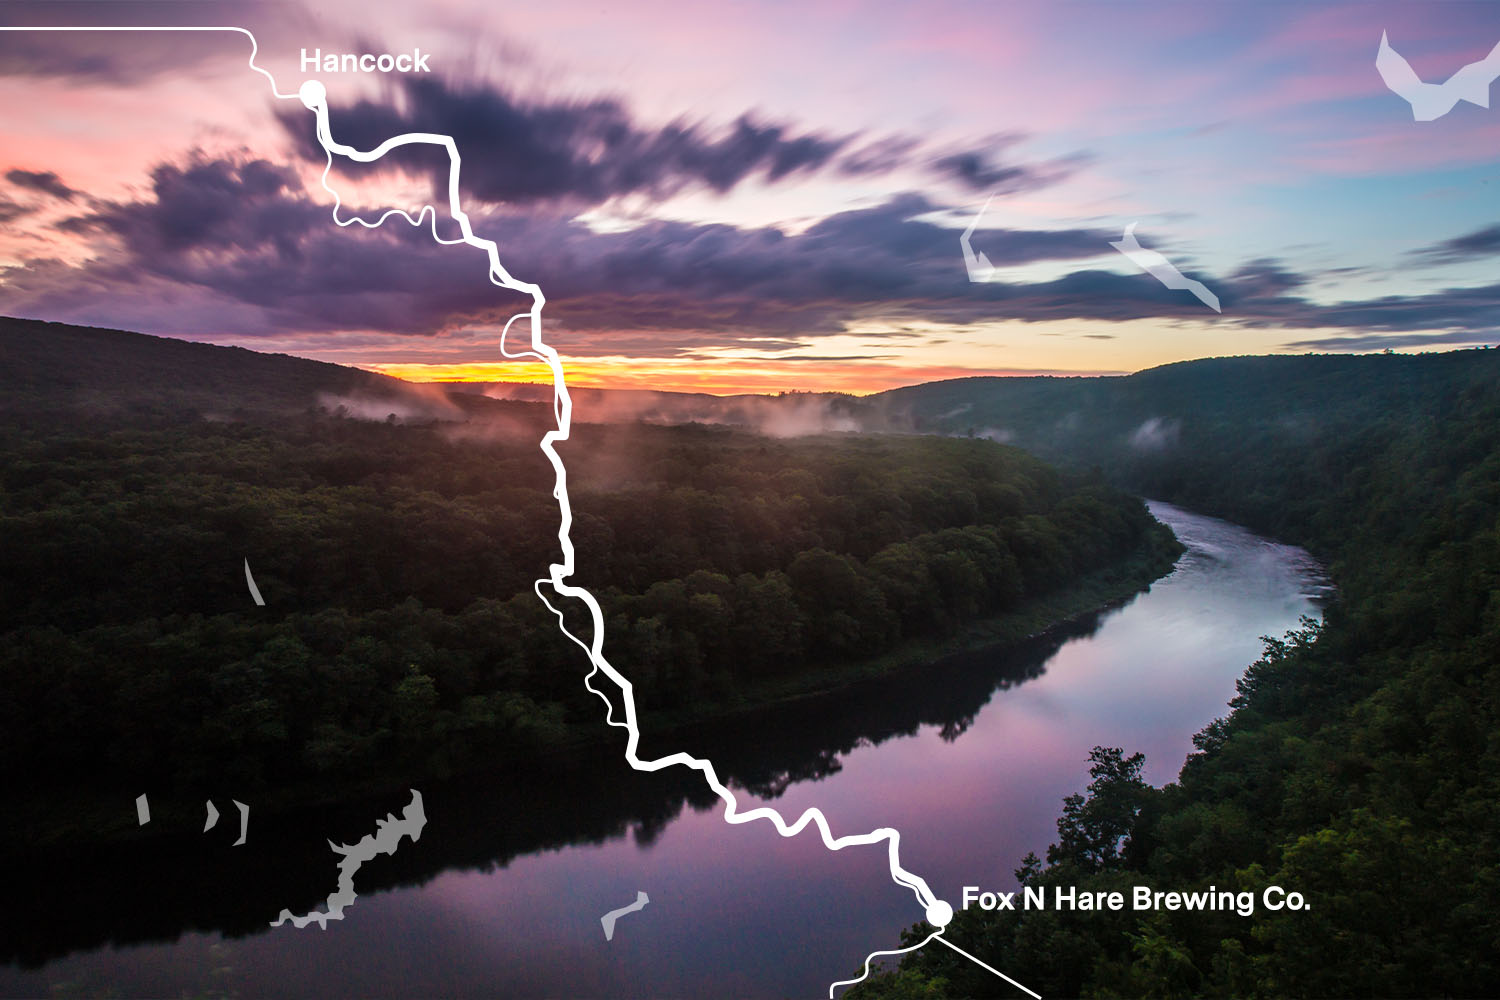 The Best Scenic Drive in the Tri-State Area is NY 97, The Hawk's Nest Highway